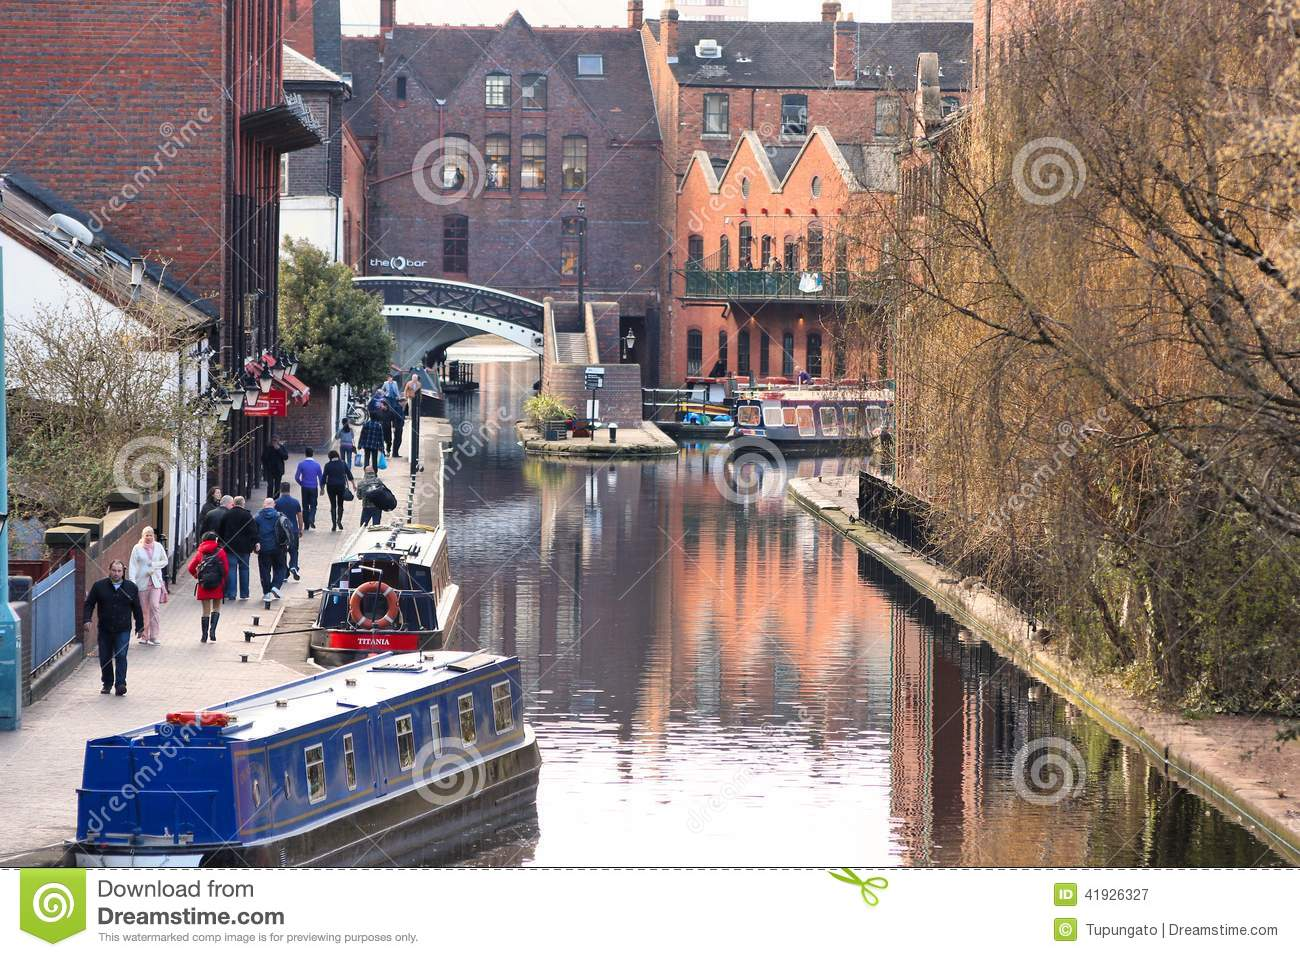 Current local time in Birmingham, United Kingdom. Time difference with Birmingham, Birmingham time zone, military time in Birmingham, daylight saving time (DST) in Birmingham, time change in Birmingham, sunrise and sunset time in Birmingham, Birmingham map, .